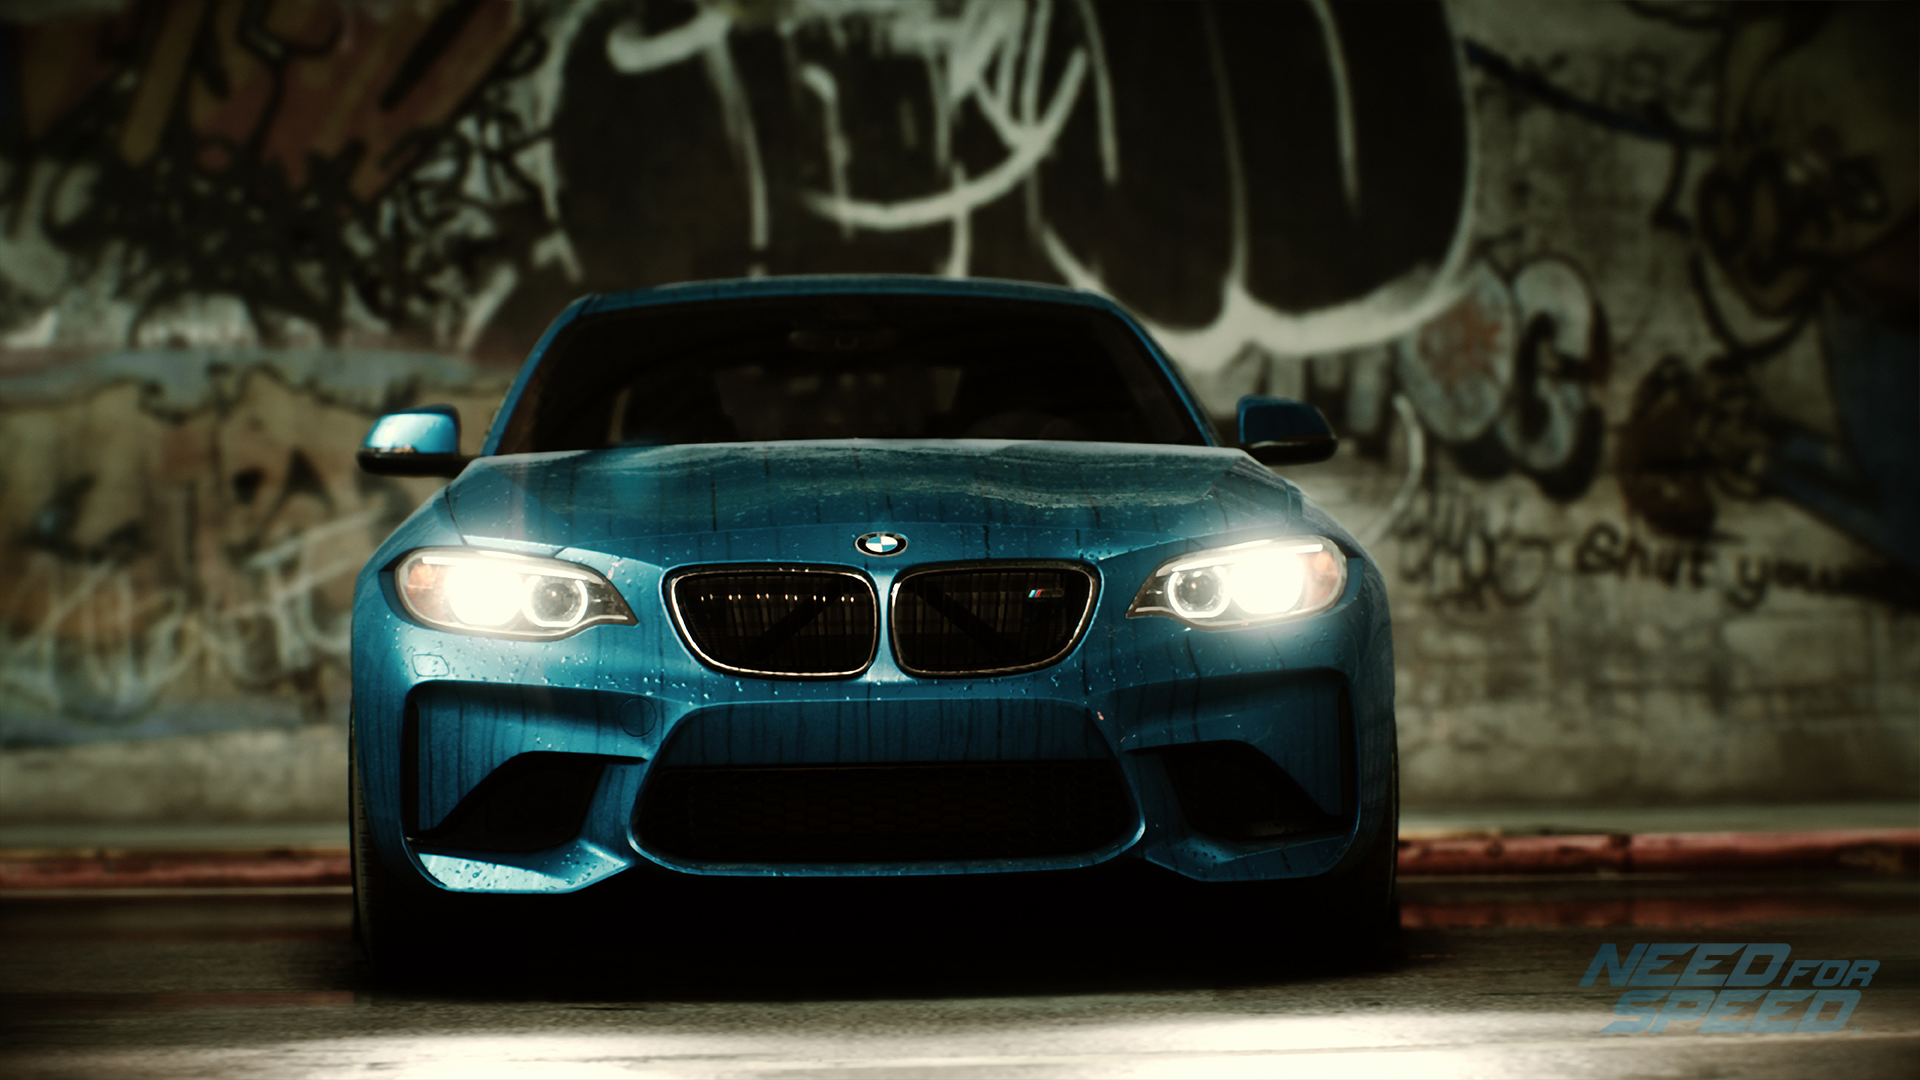 la nouvelle bande annonce de need for speed d voile le coup bmw m2. Black Bedroom Furniture Sets. Home Design Ideas